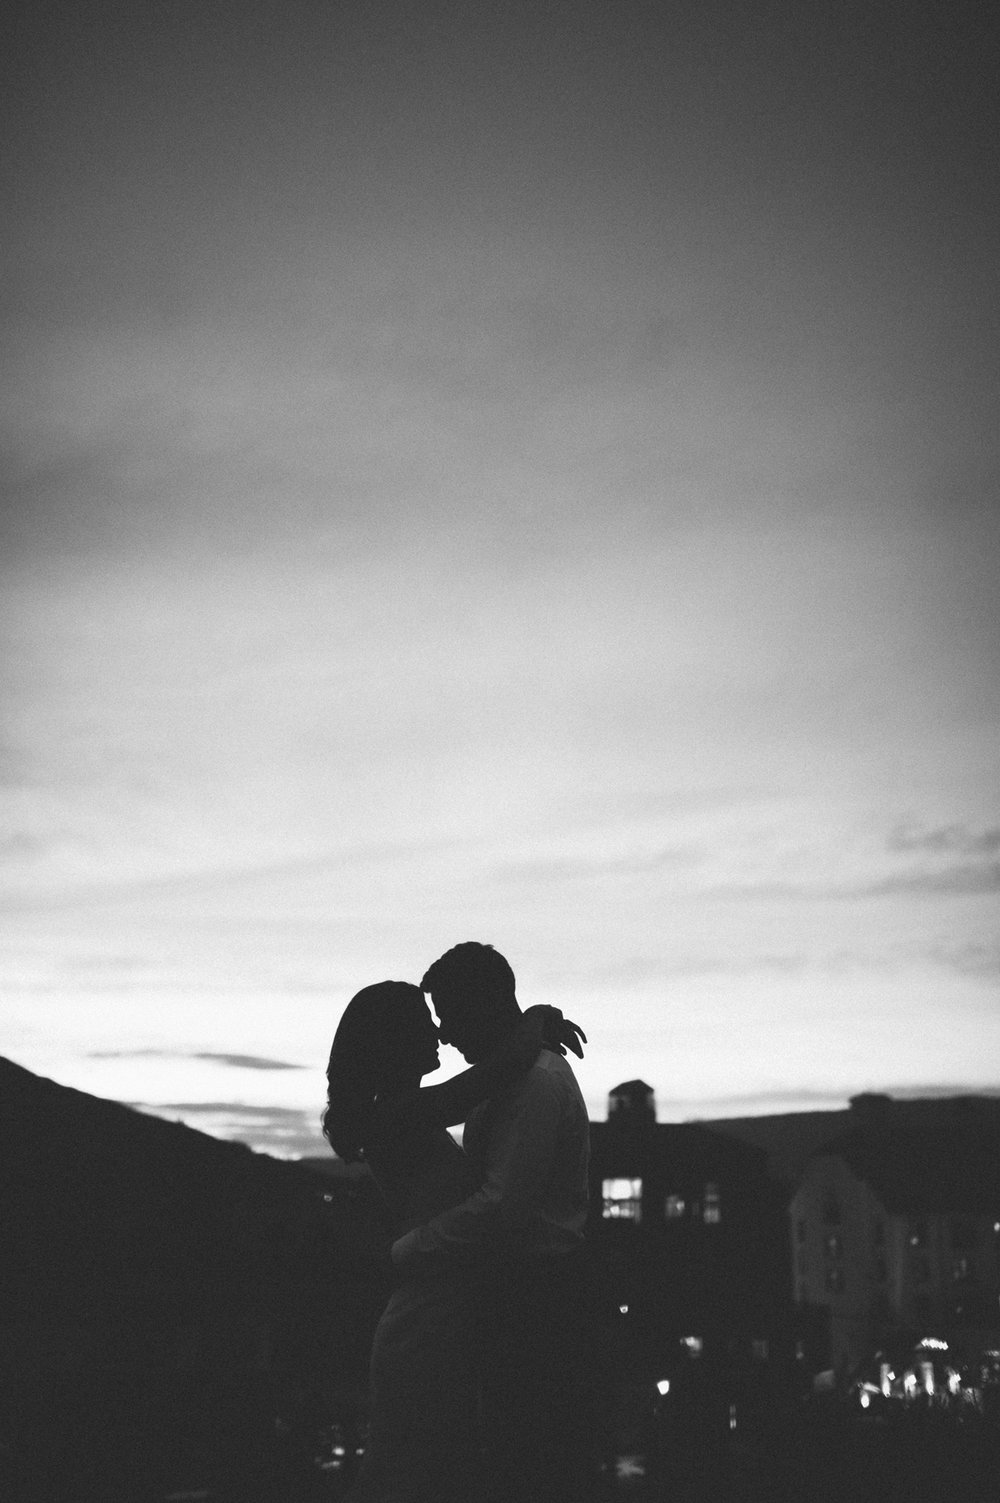 491-beaver-creek--park-hyatt--sunset--wedding--portrait--couple--black-and-white.jpg